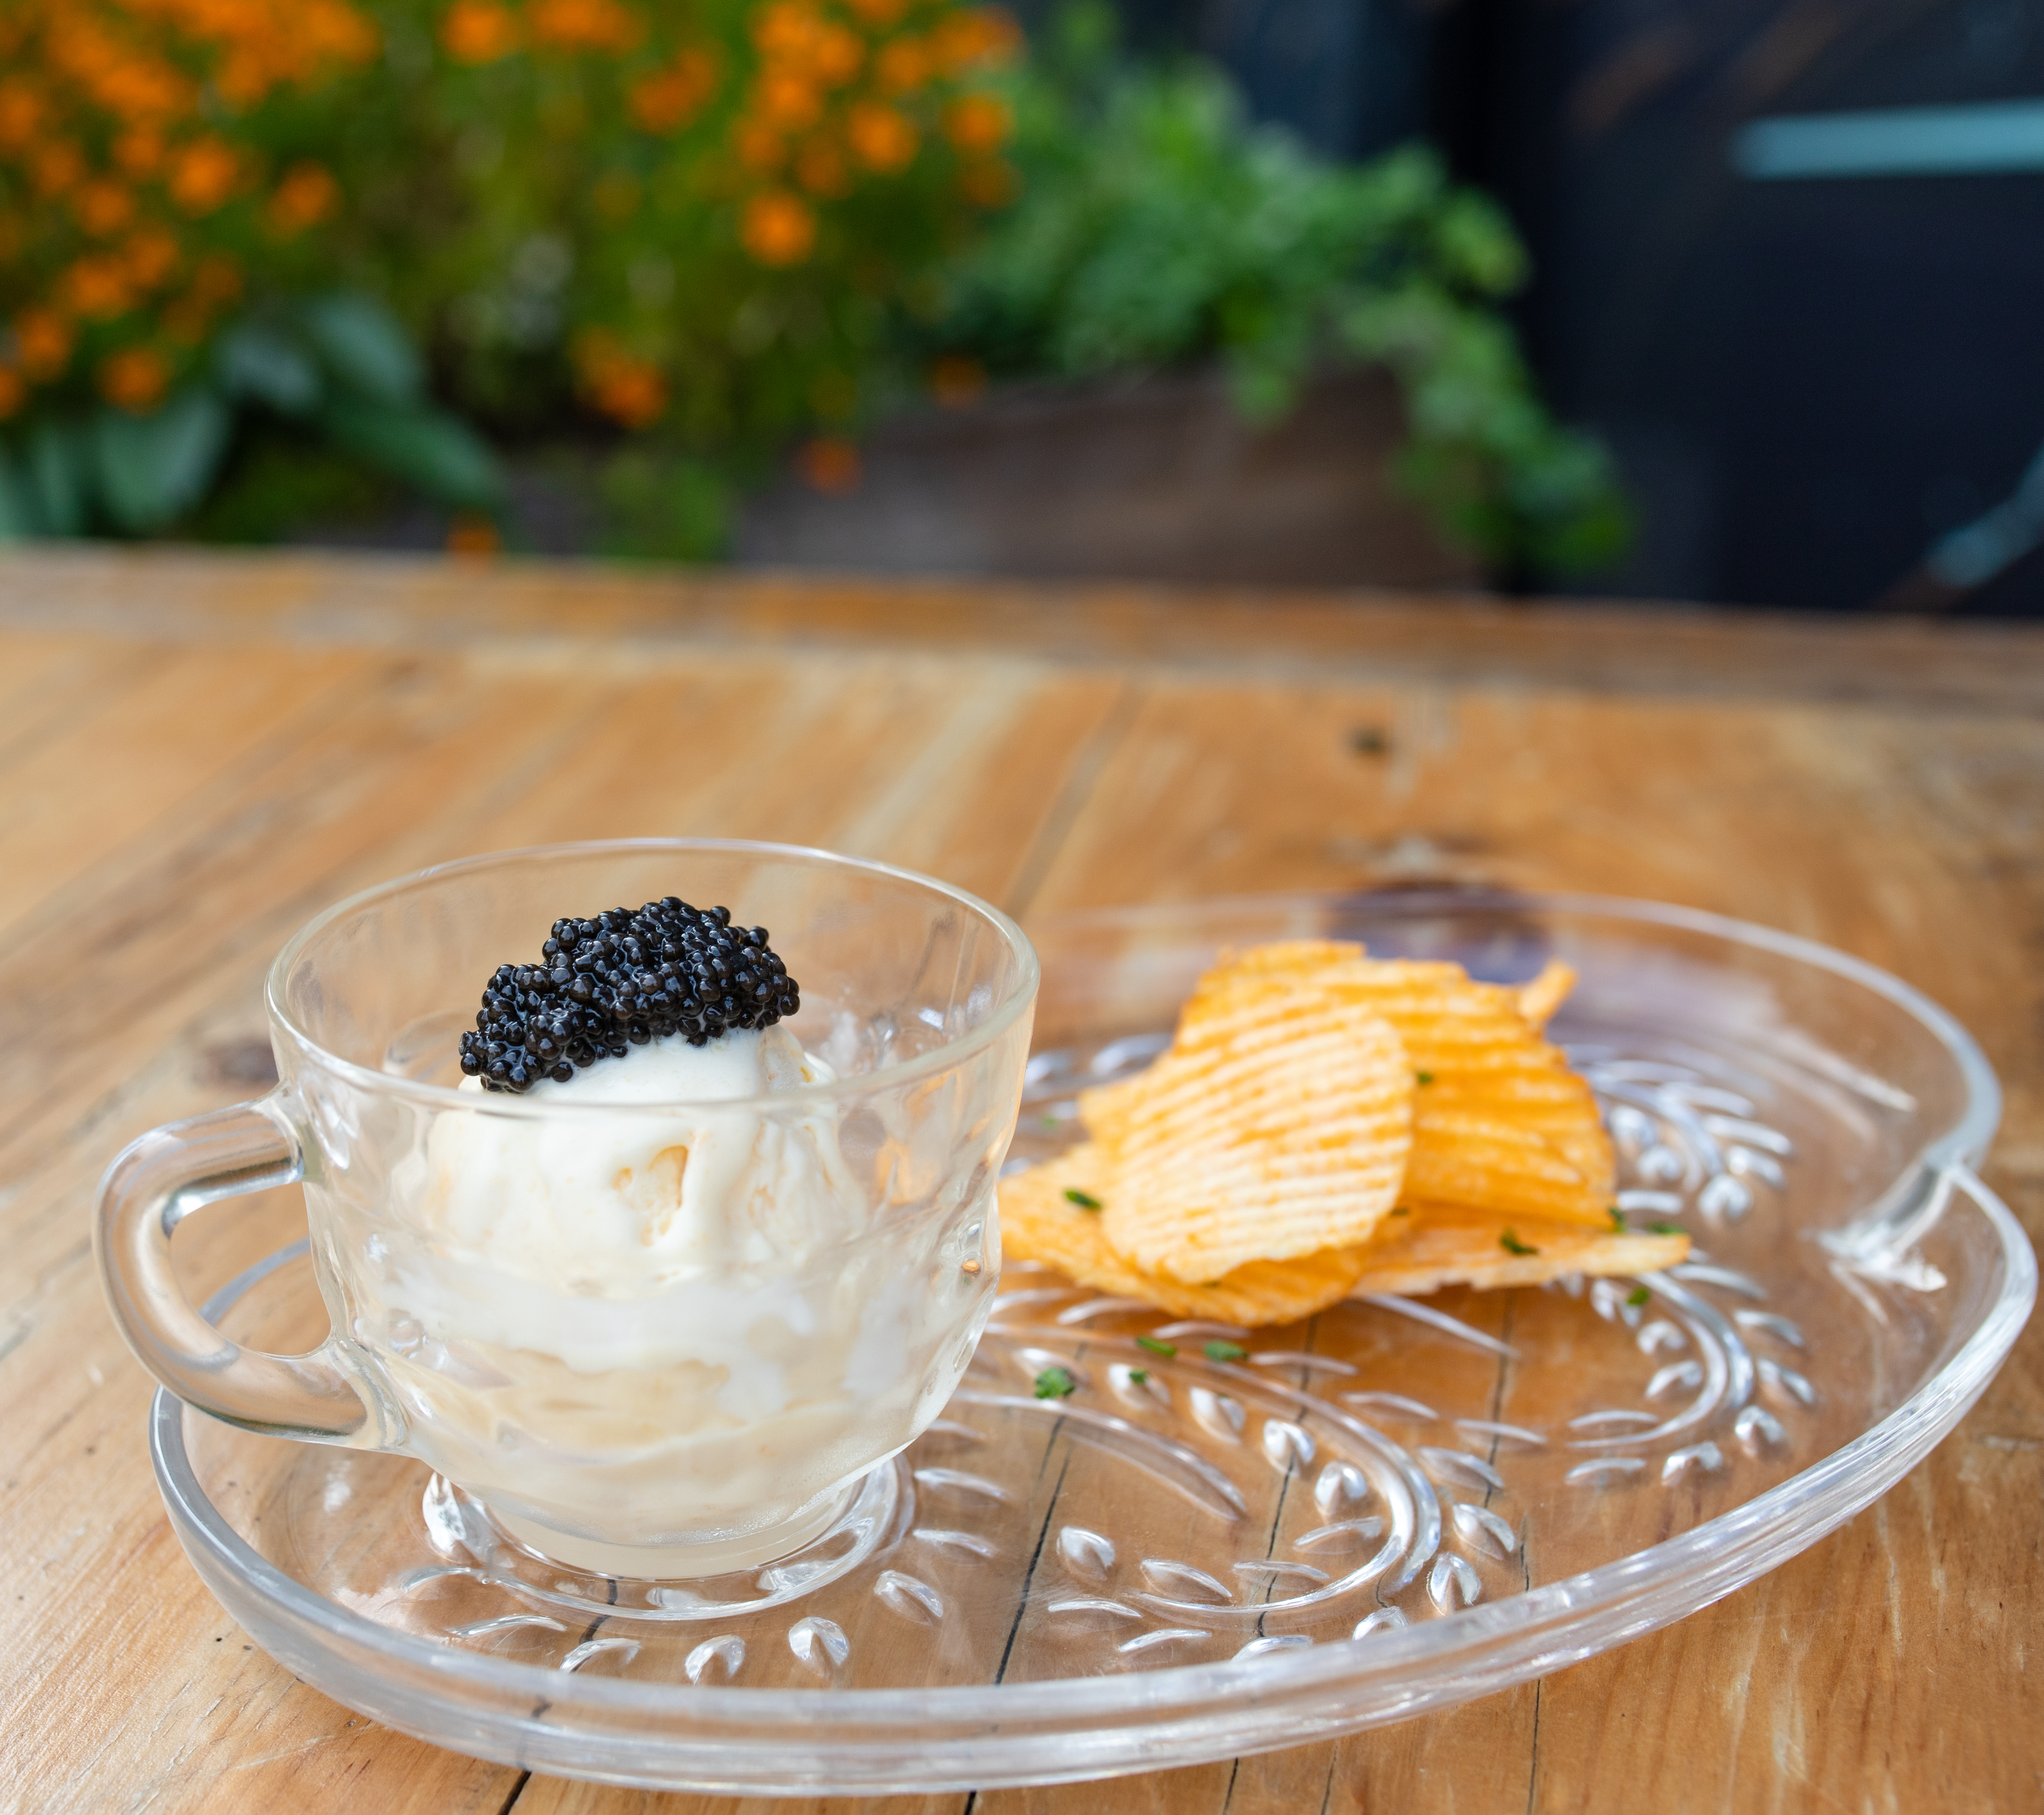 A small glass teacup holds a scoop of white ice cream with a dollop of black caviar on top. A small pile of orange potato chips sits beside it.